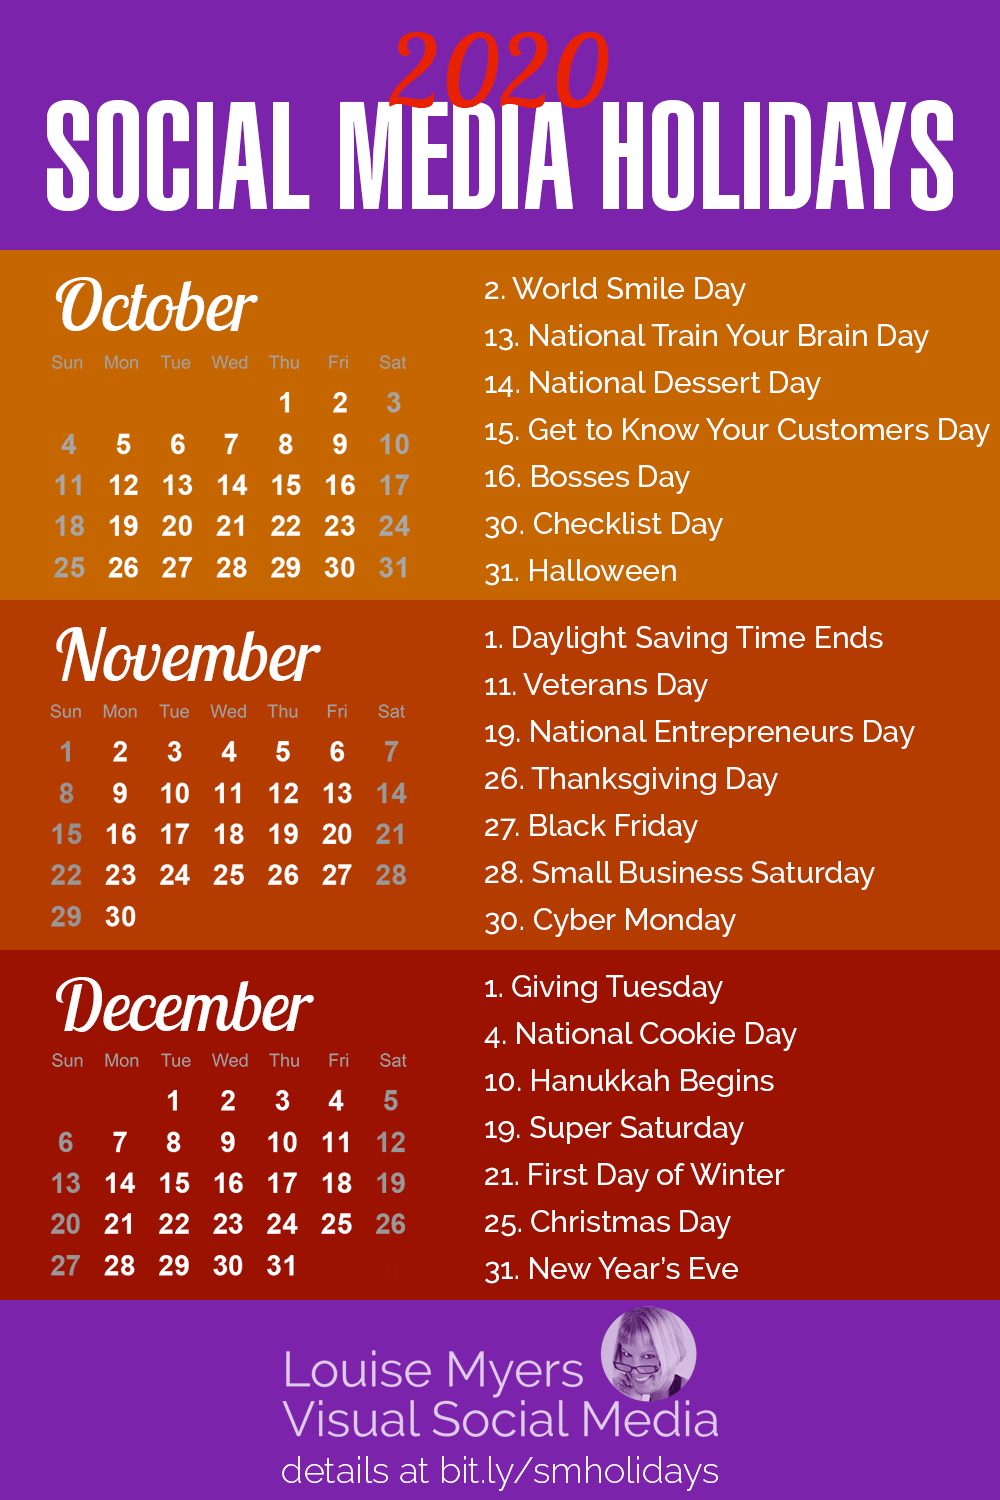 Halloween Holiday 2020 100+ Social Media Holidays You Need in 2020 21: Indispensable!